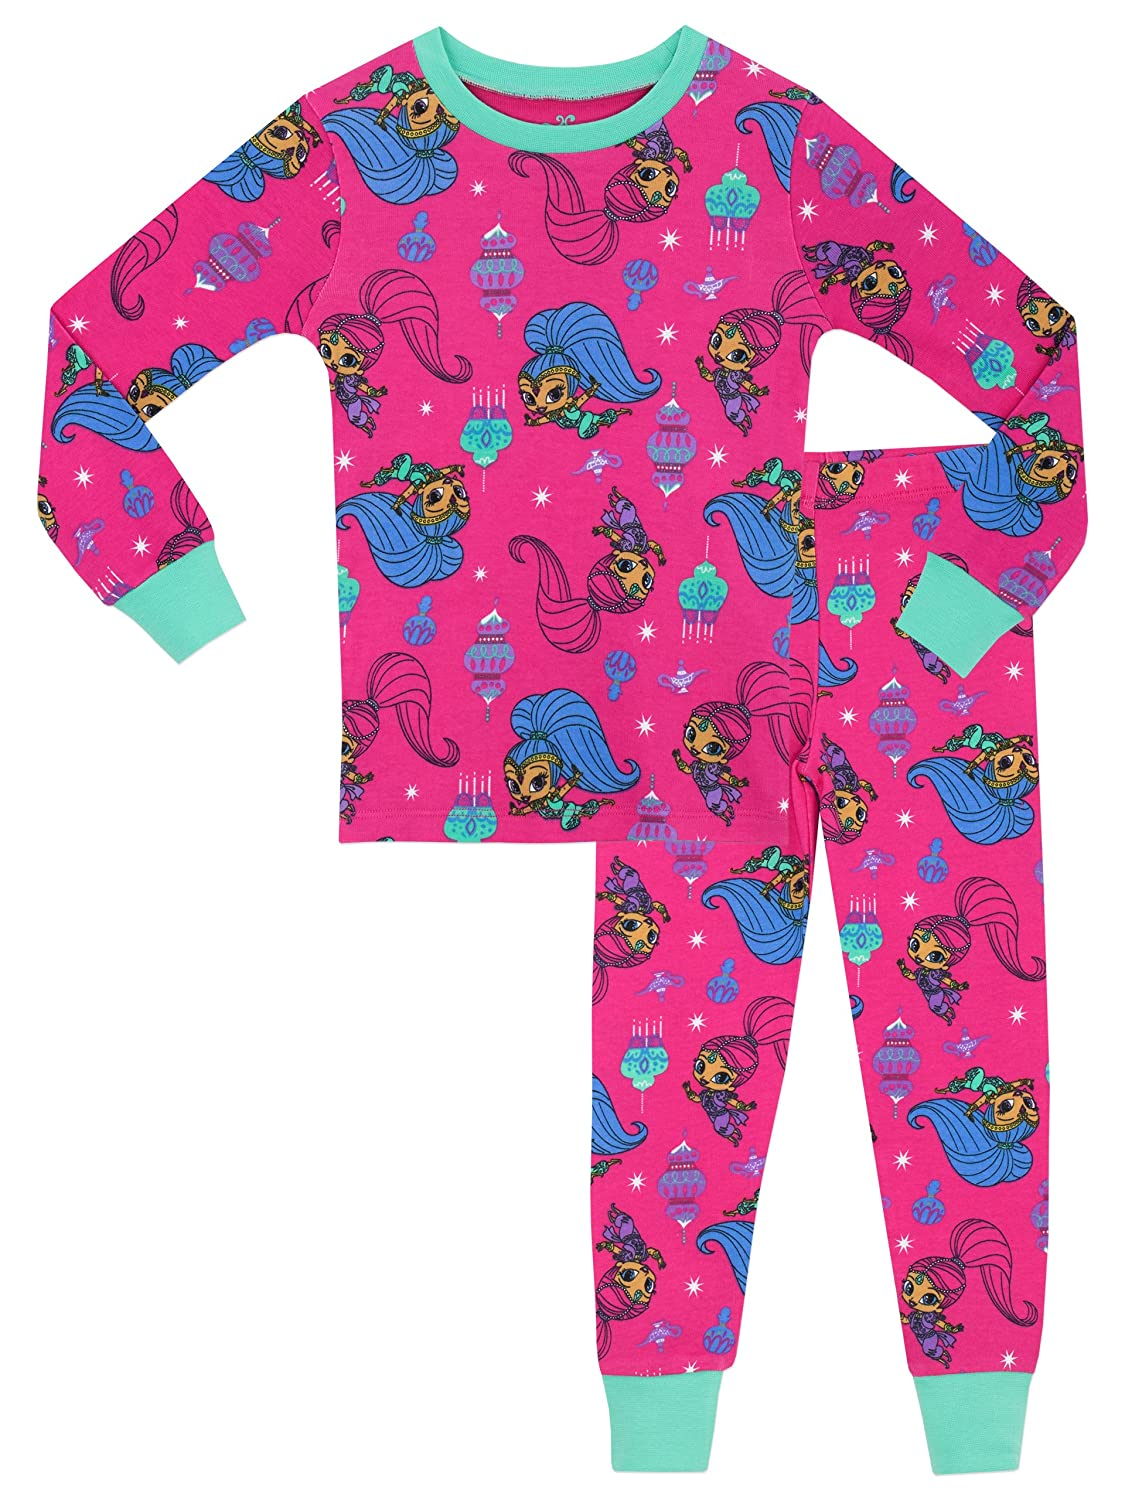 Shimmer & Shine Girls Shimmer and Shine Pyjamas - Snuggle Fit - Ages 2 to 8 Years